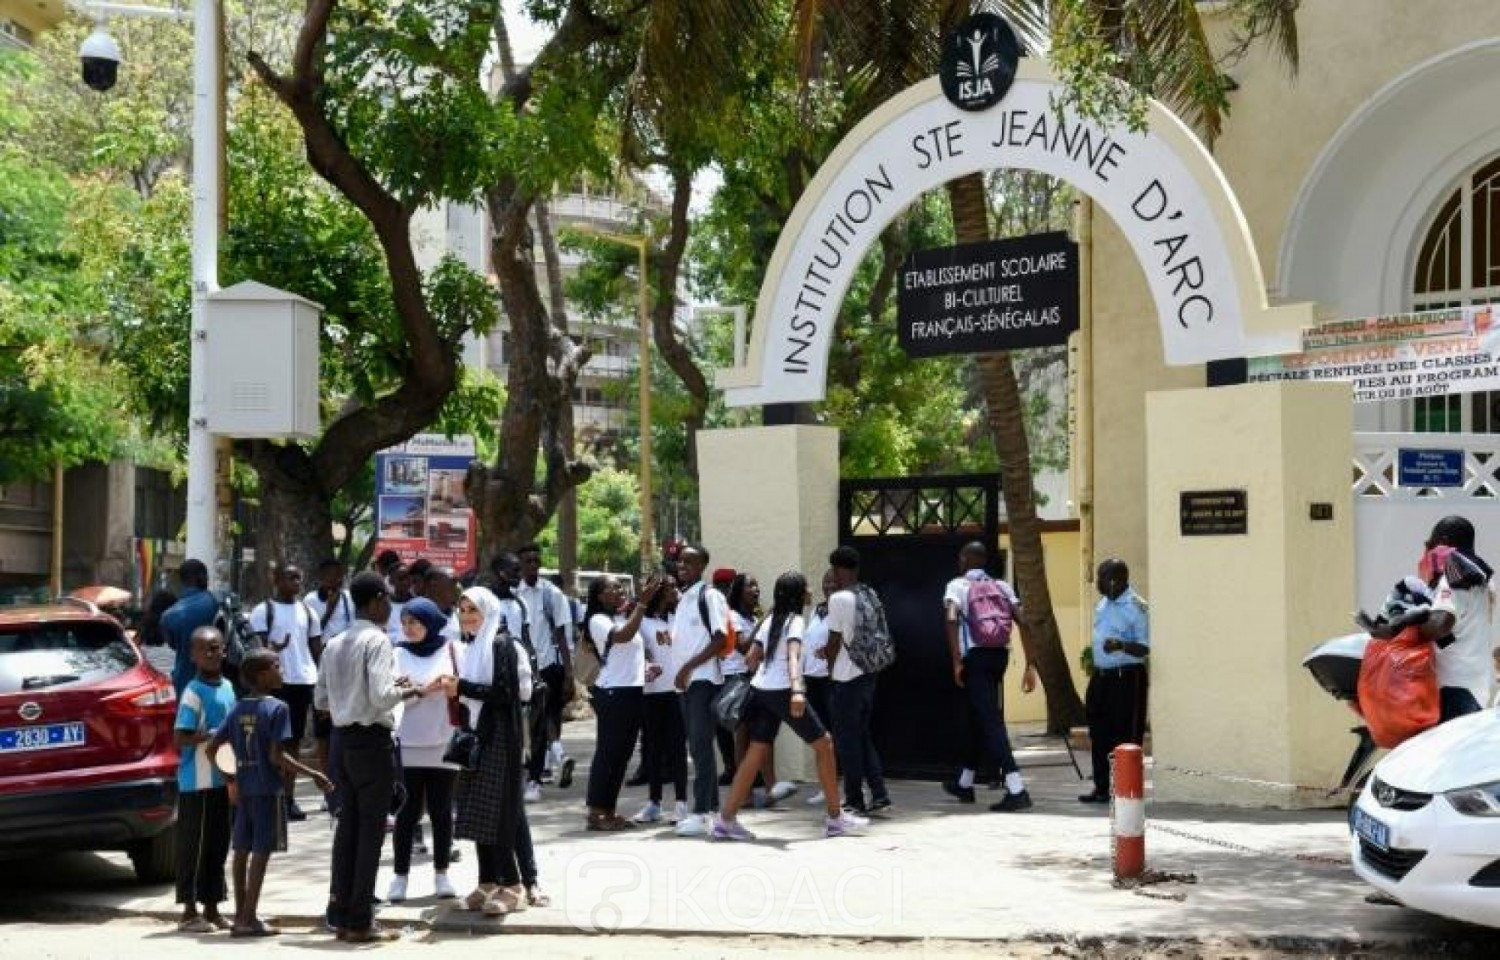 Sénégal: Interdiction du voile à l'Institution Sainte Jeanne d'Arc de Dakar, l'Etat va sévir